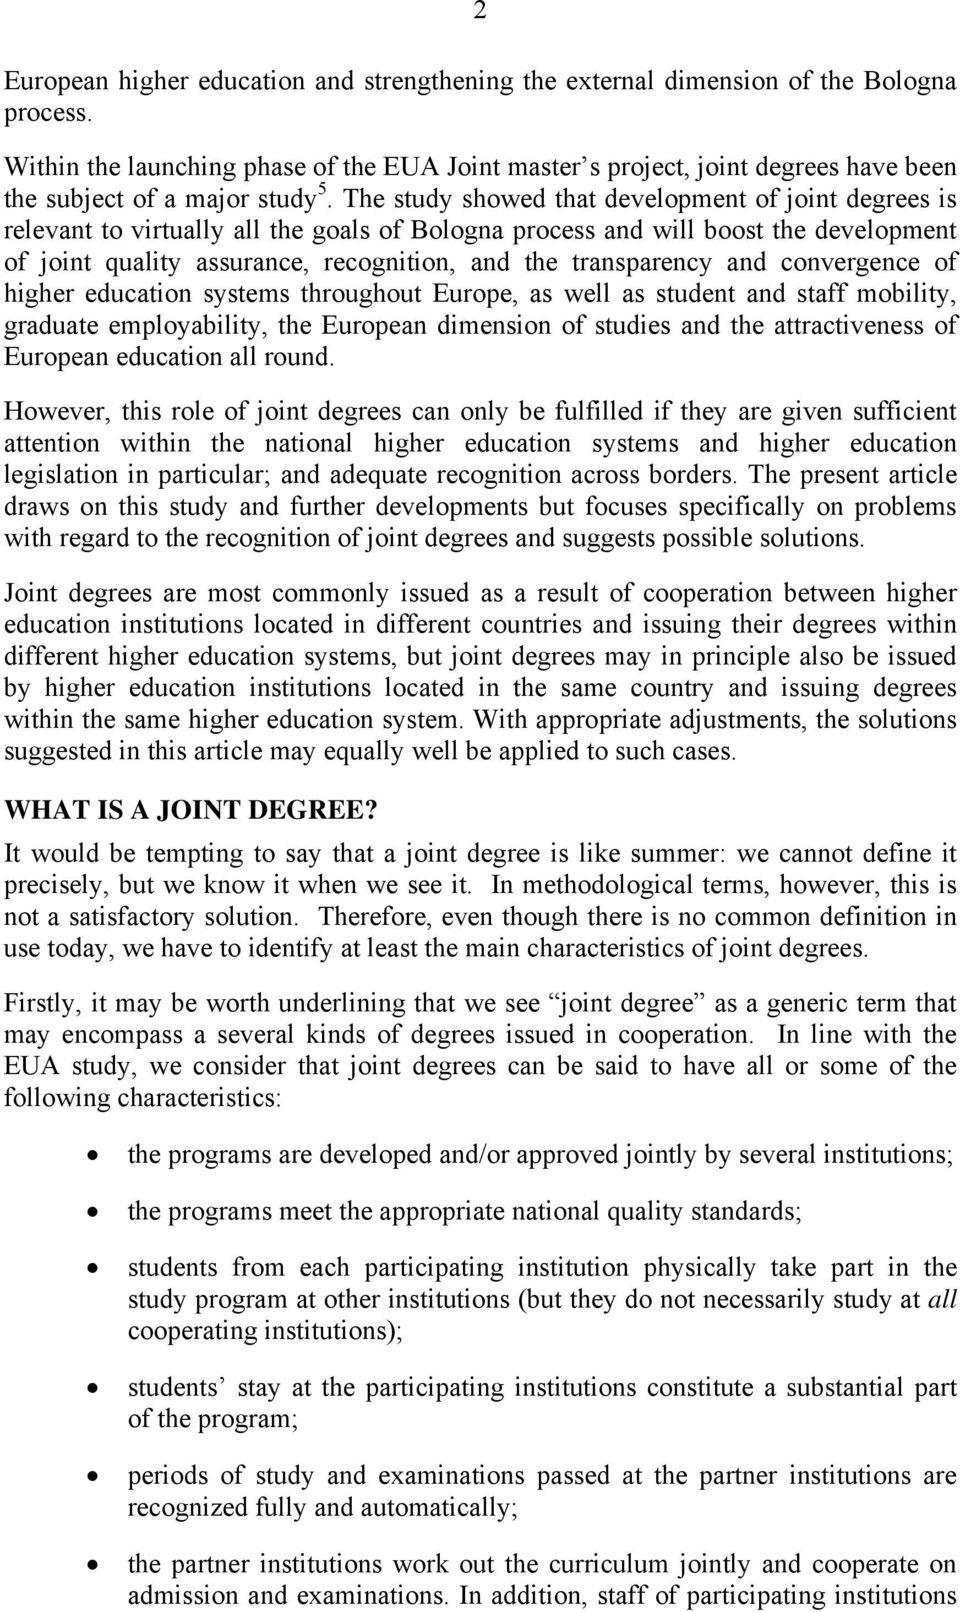 The study showed that development of joint degrees is relevant to virtually all the goals of Bologna process and will boost the development of joint quality assurance, recognition, and the